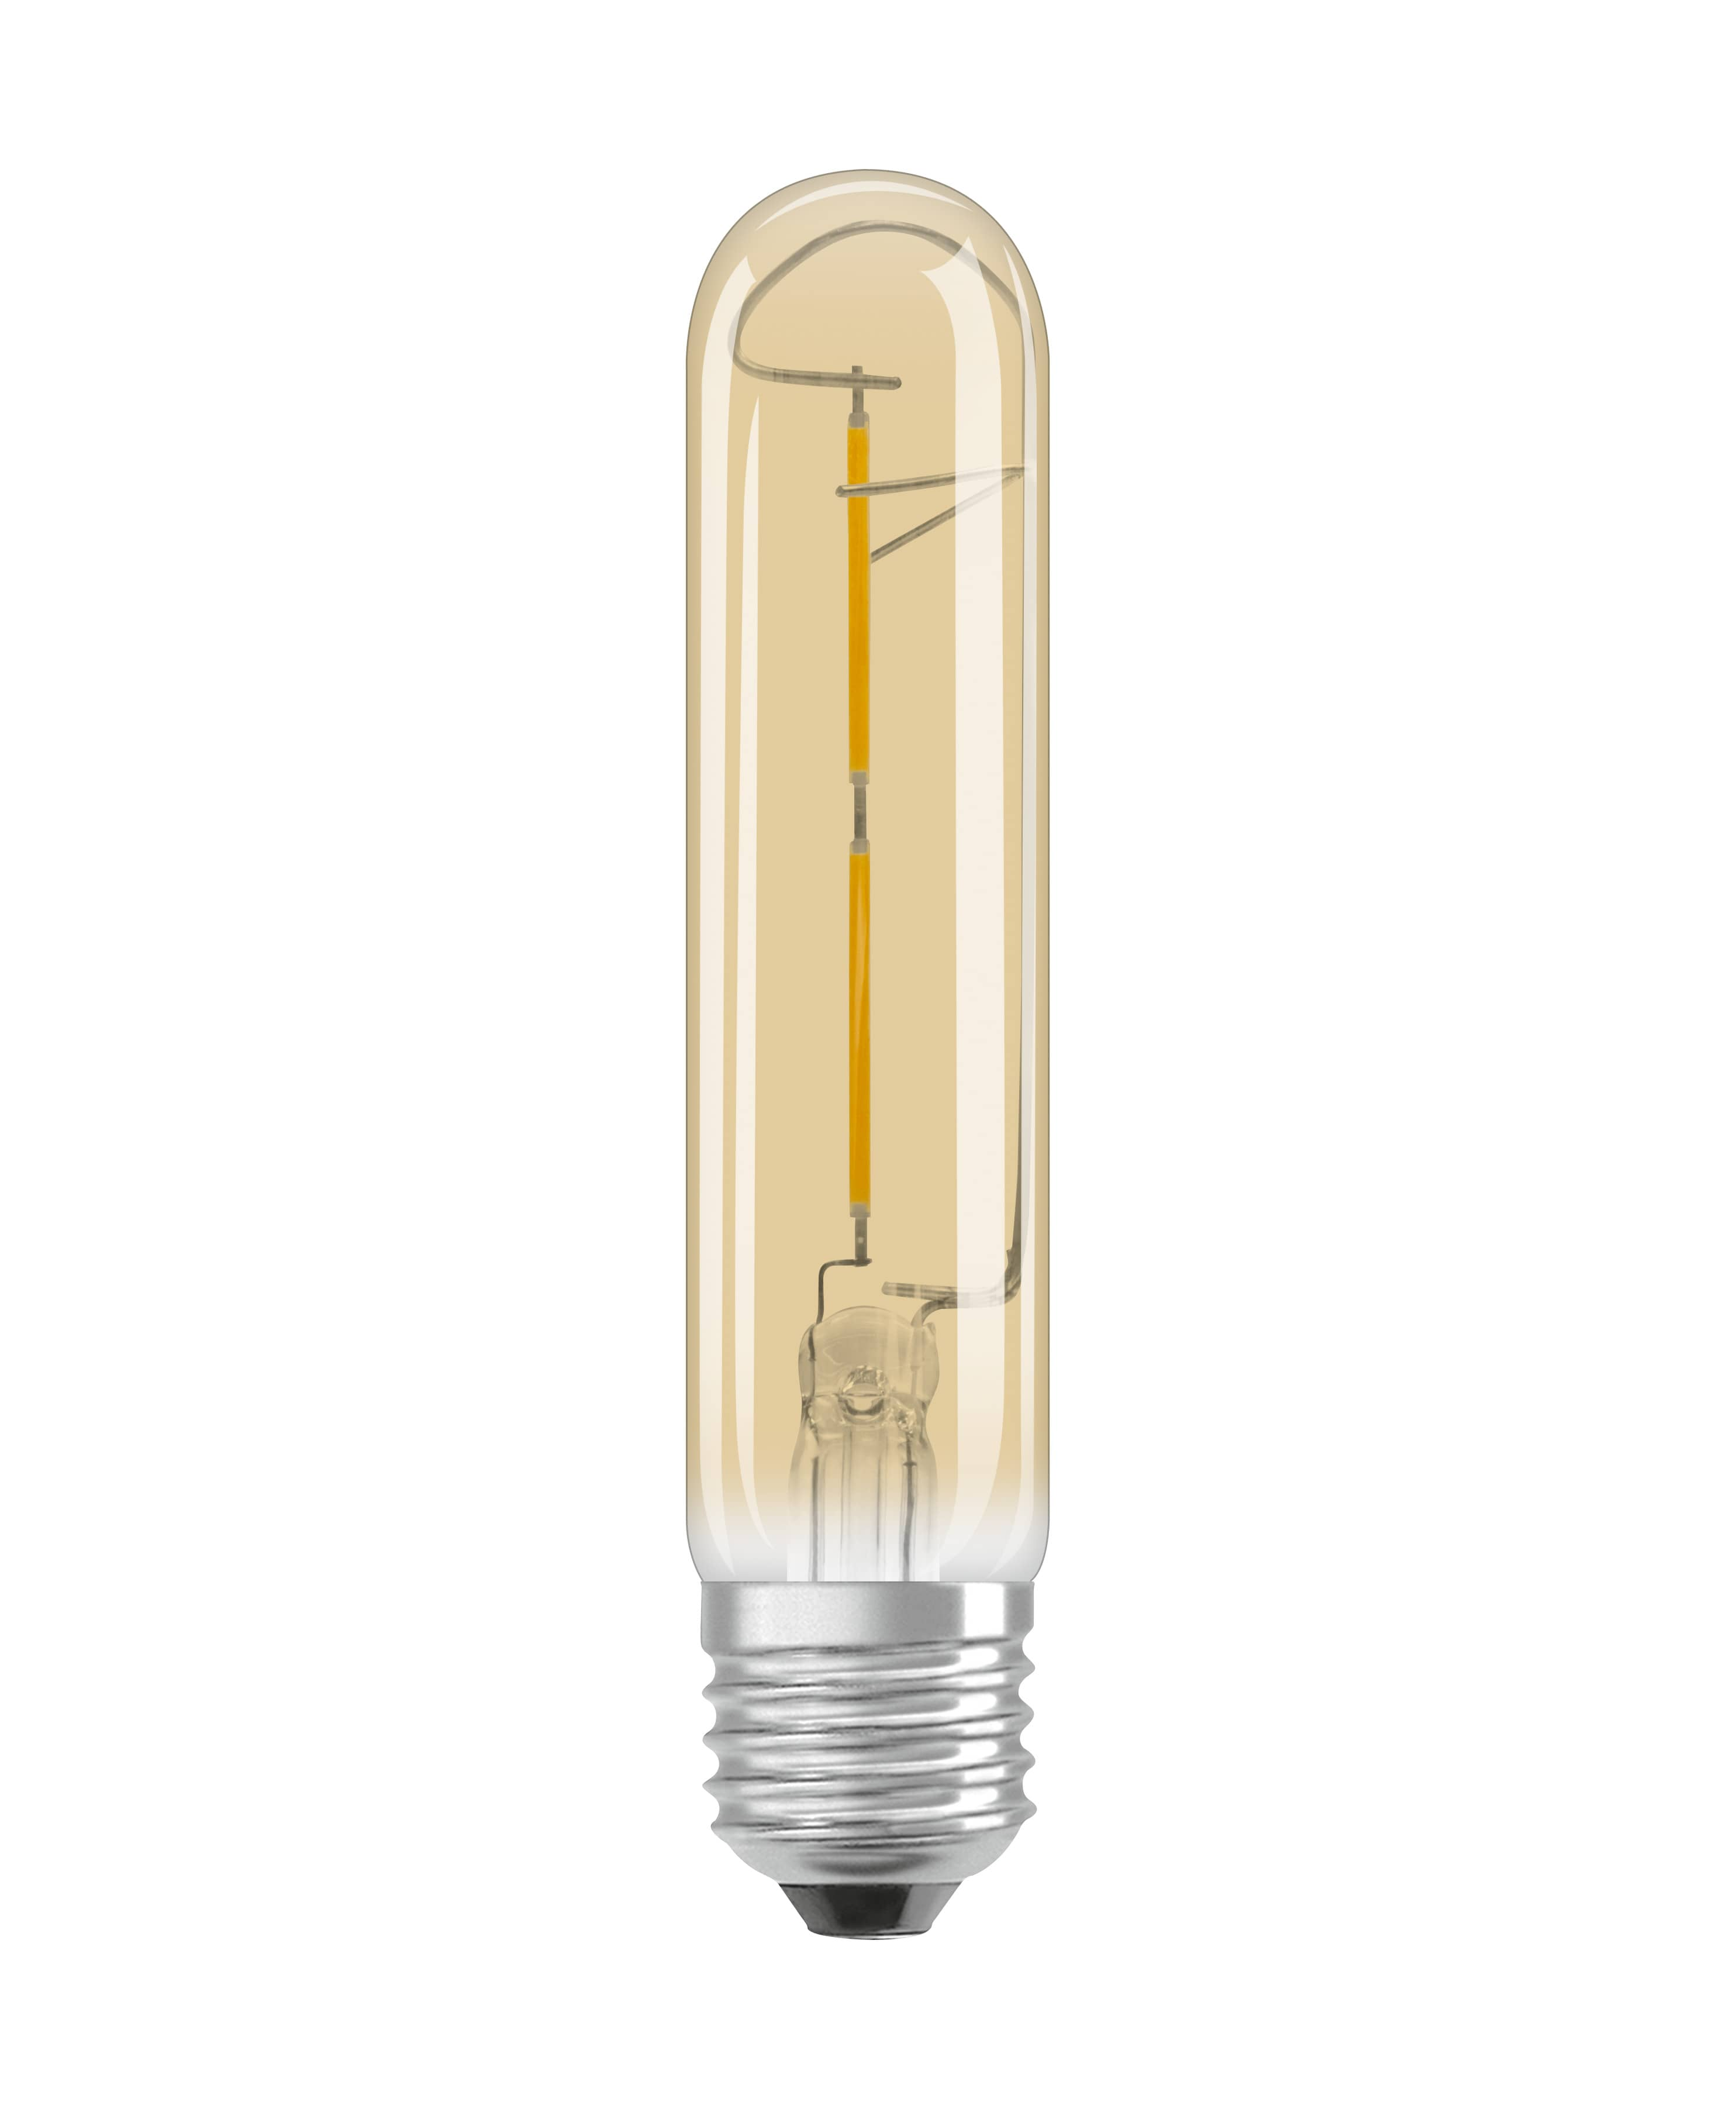 Vintage E27 LED Lampe 2.8W 200Lm warmweiss